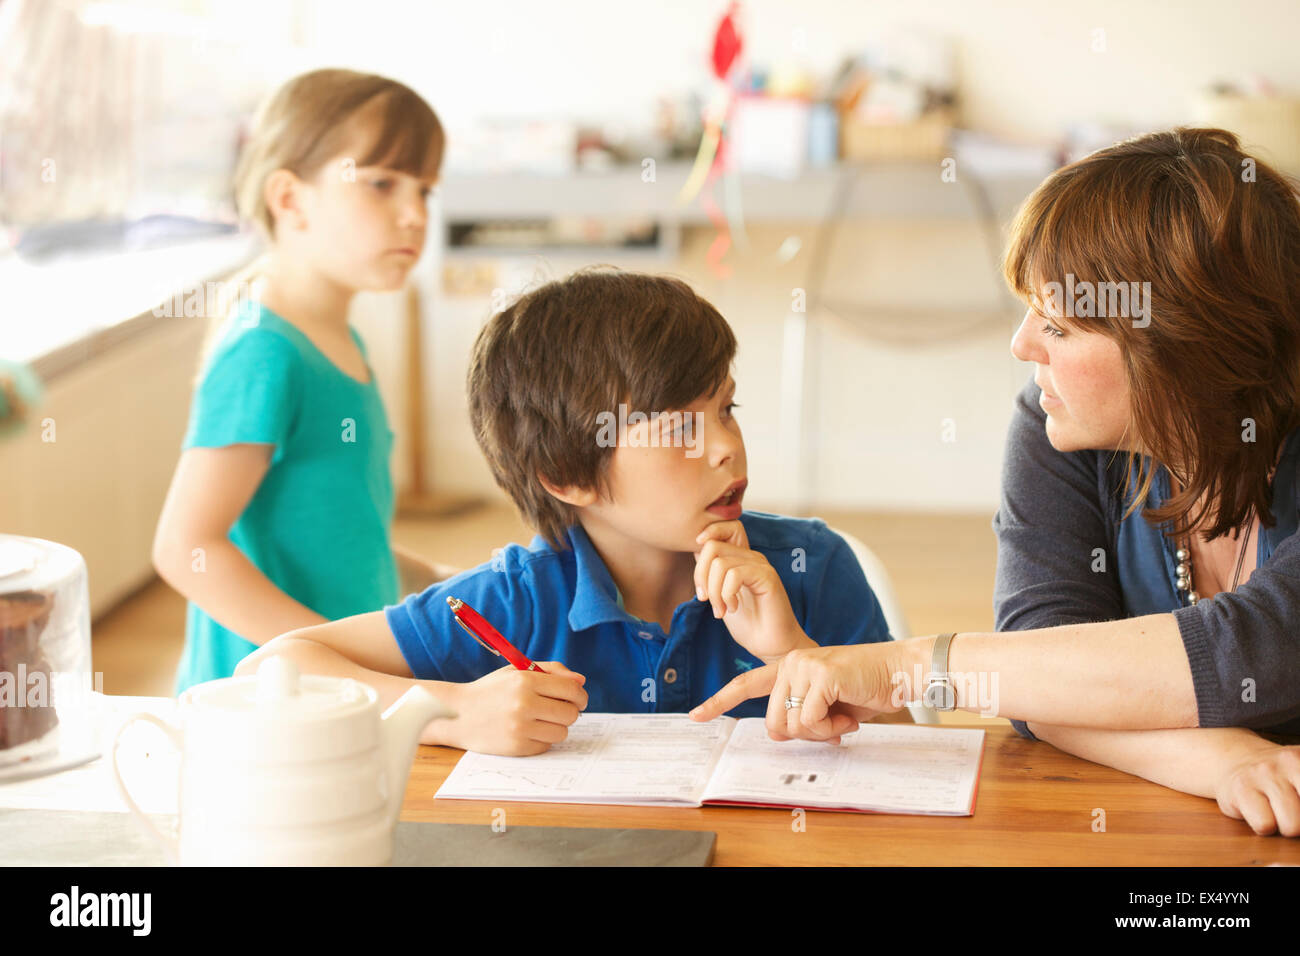 Mother and Son Doing Homework at Kitchen Table, Daughter in background Stock Photo